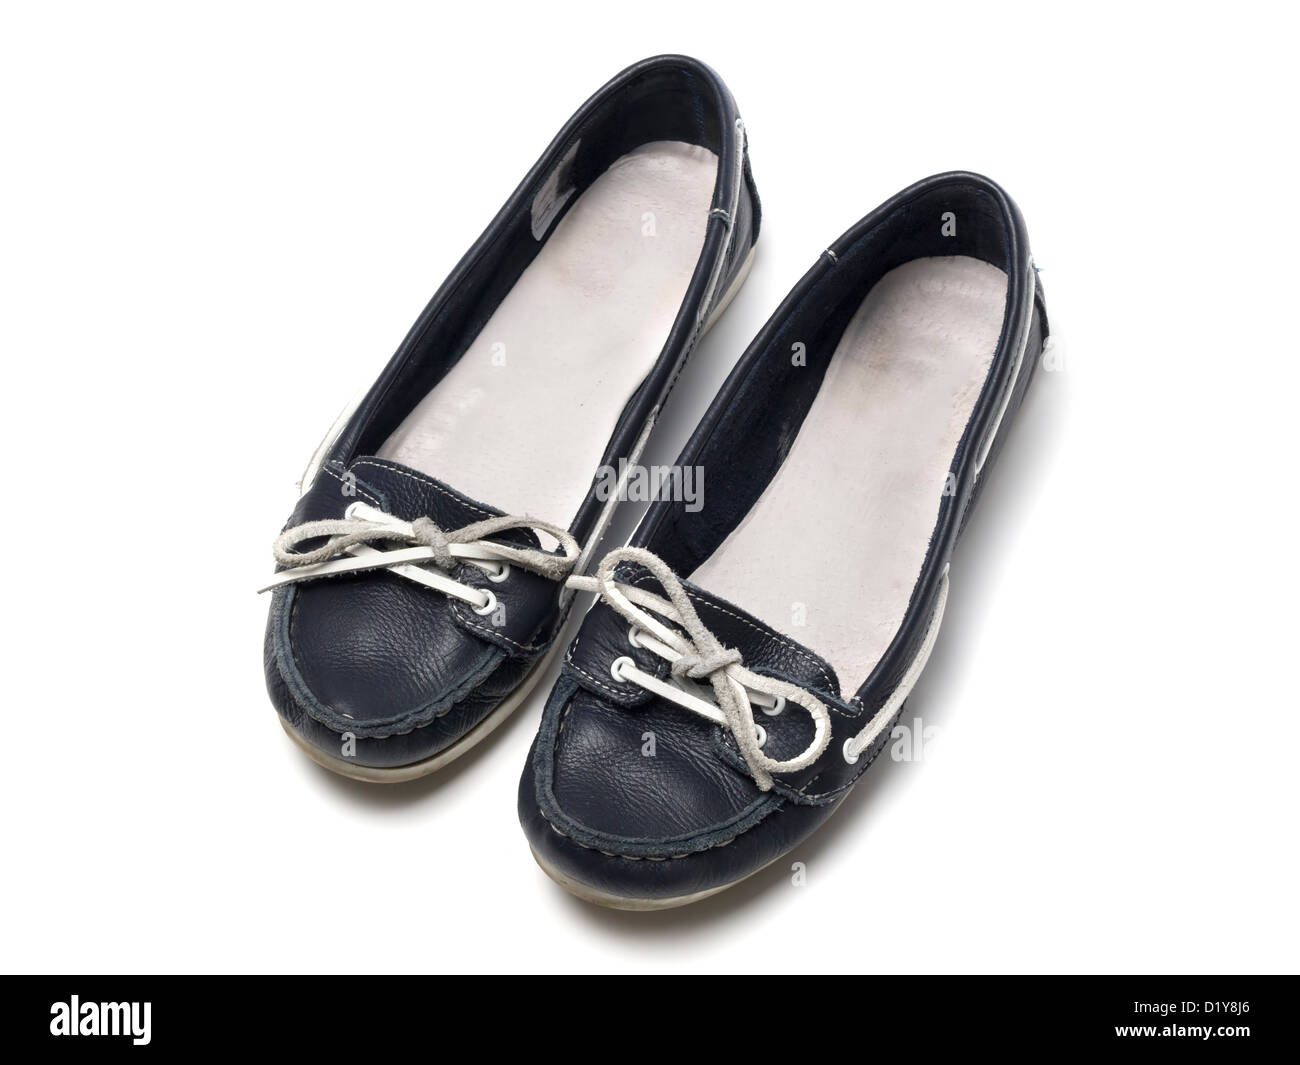 Pair of female blue flat shoes isolated on white background - Stock Image